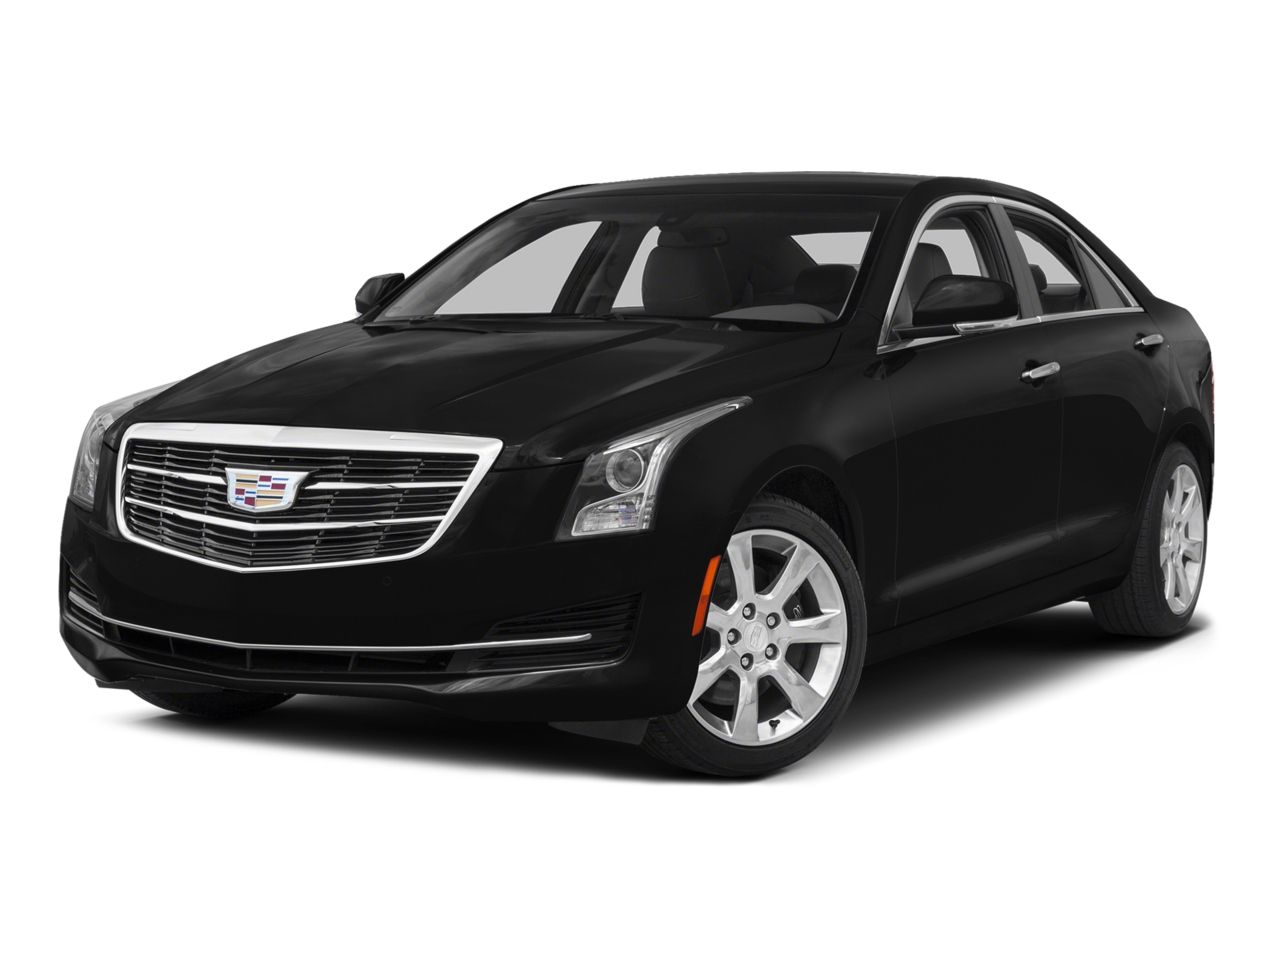 2010 Cadillac ATS V Sedan photo - 2